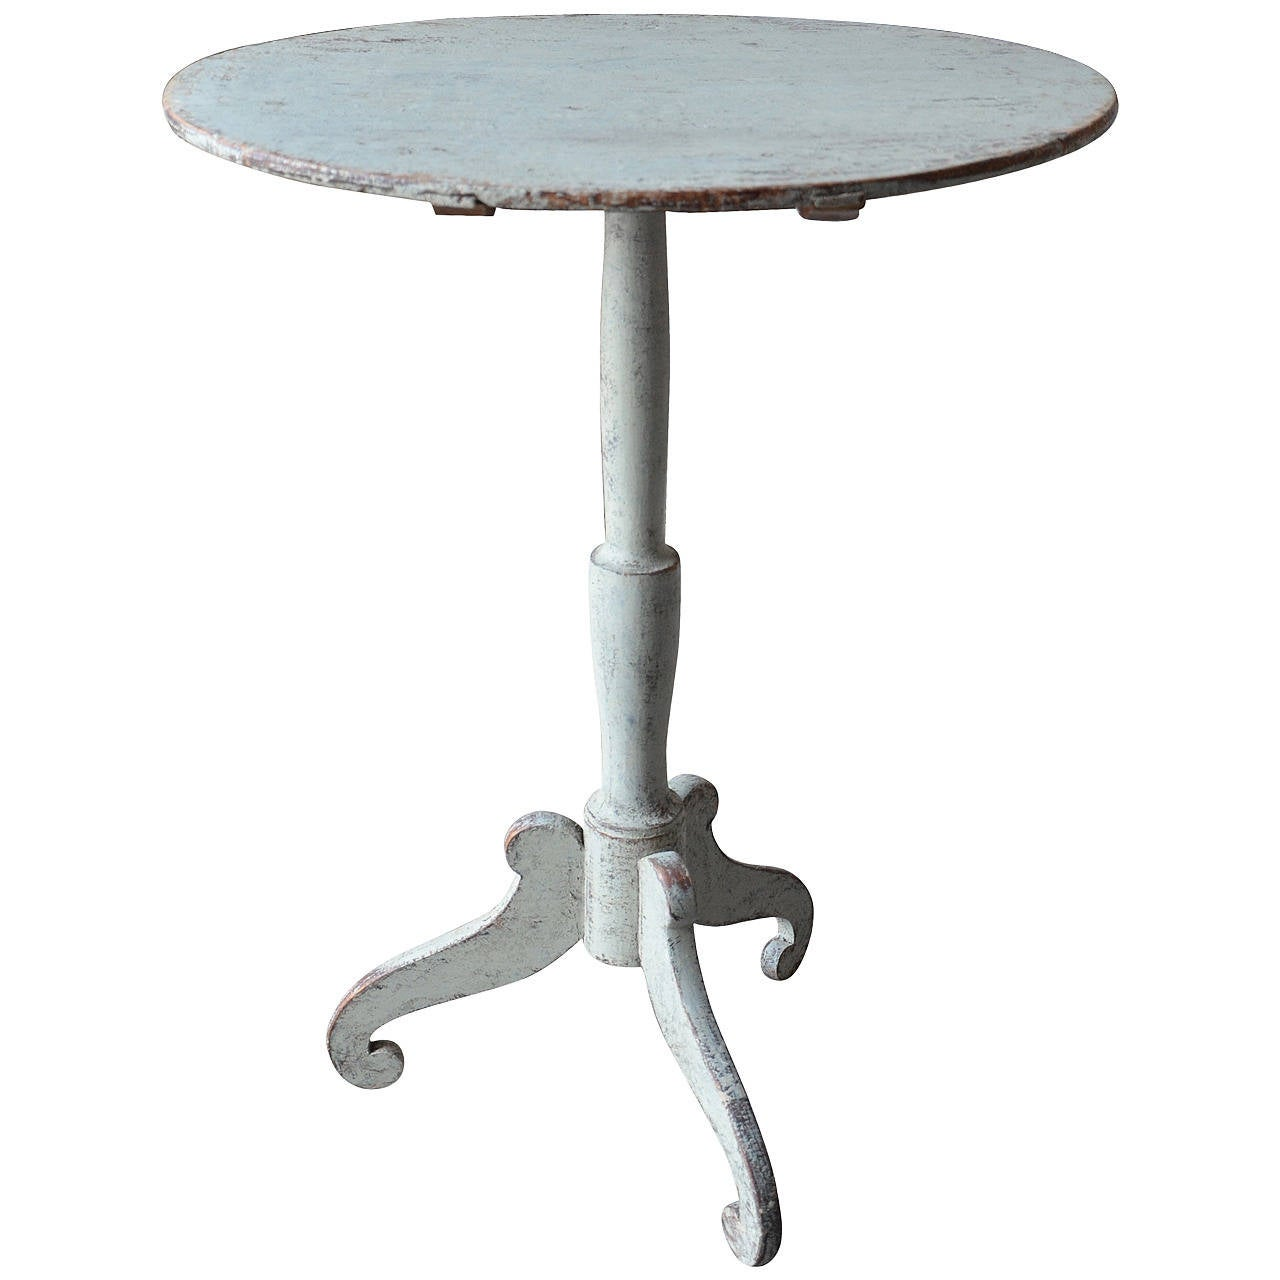 19th Century Swedish Gustavian Pedestal Table 1